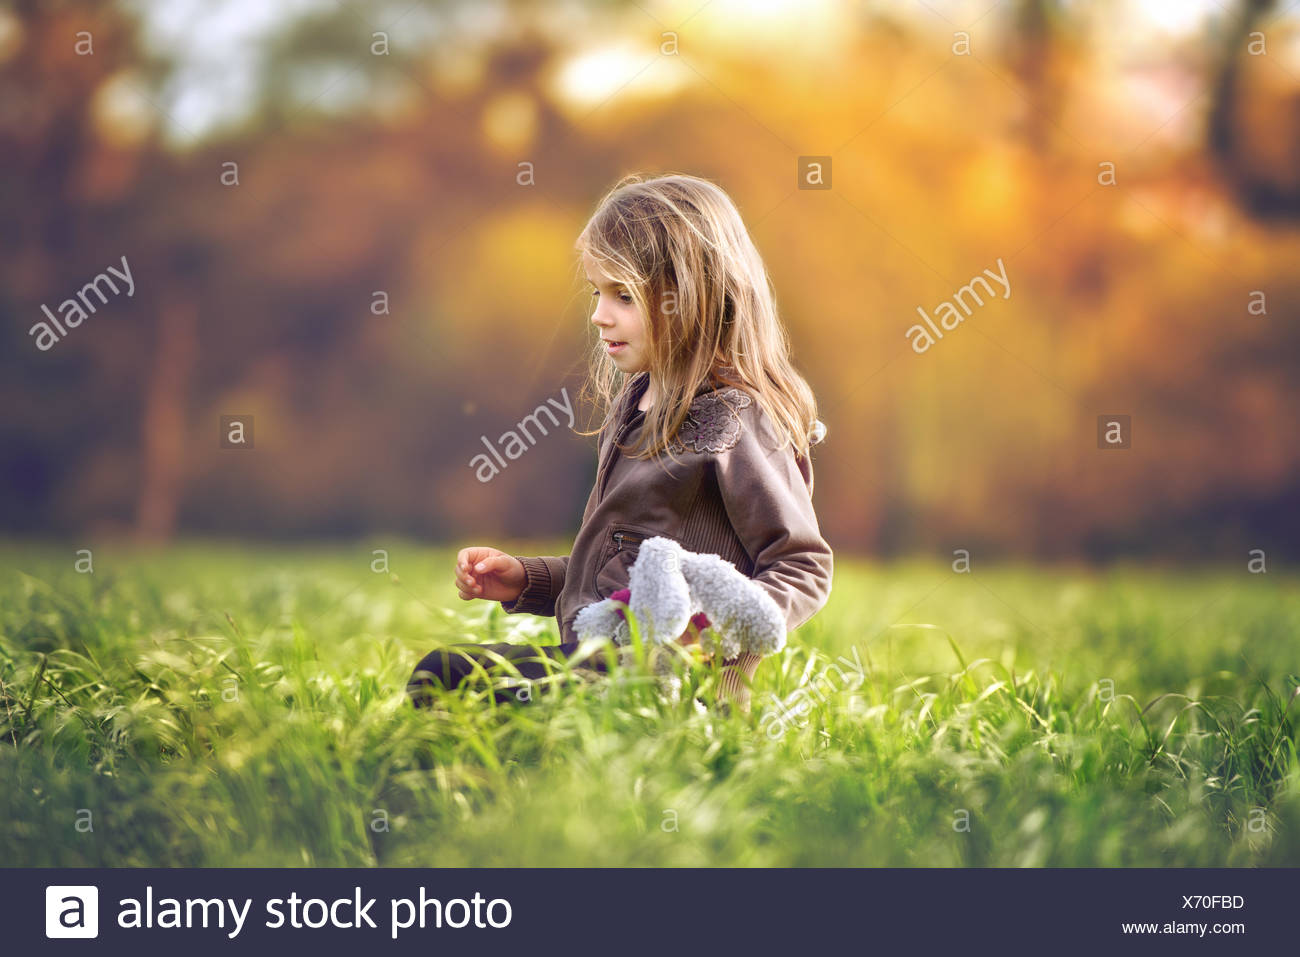 Girl sitting in a field holding a soft toy - Stock Image